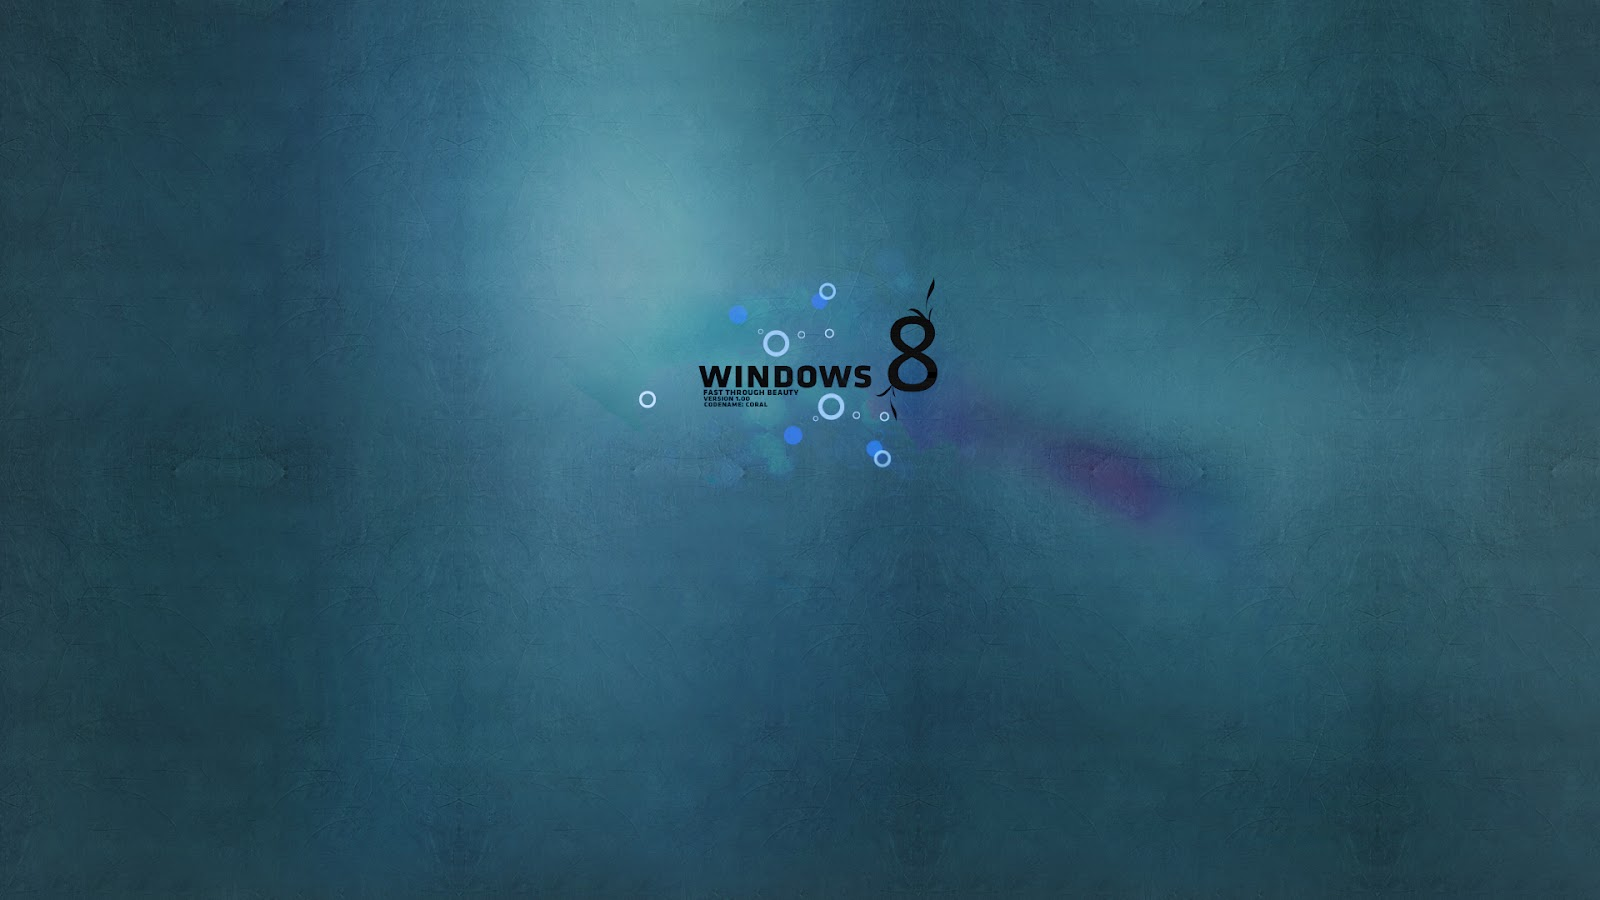 Huge HD Wallpapers: Animated Windows 8 Wallpapers